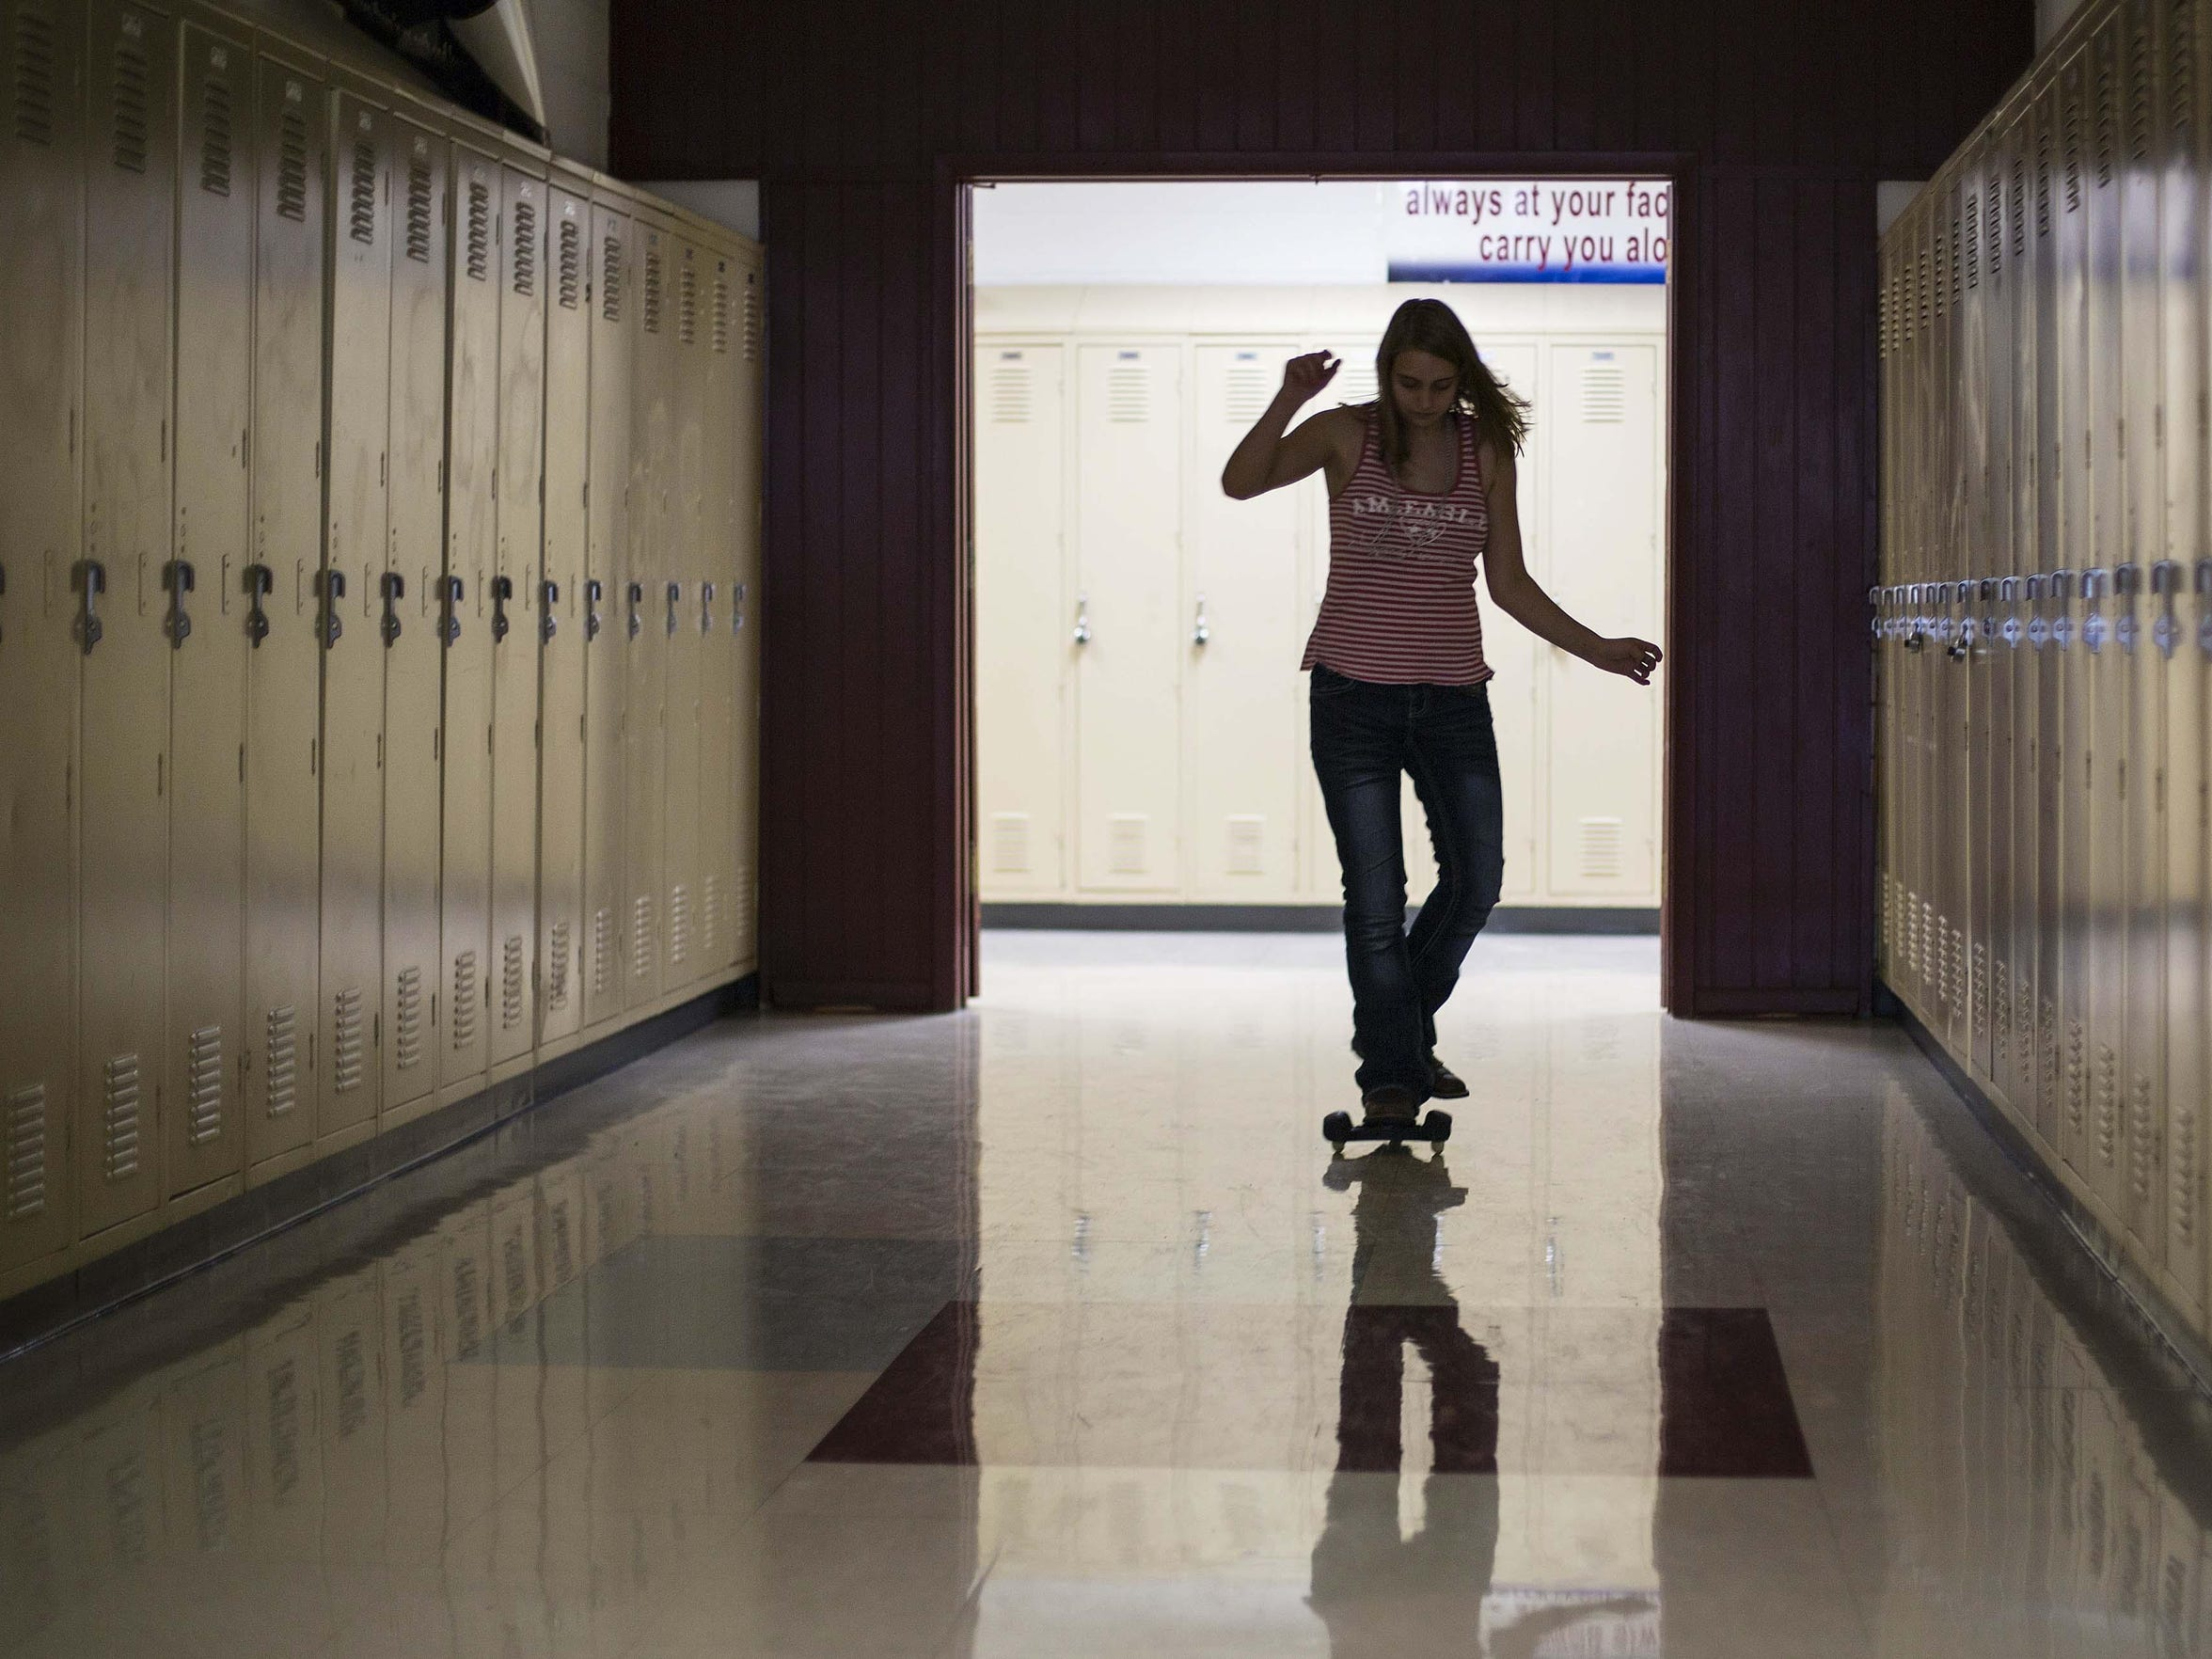 Tenth-grader Elizabeth Bell skates through a vacant hallway during the last minutes of the last day of class Friday May 29, 2015, at Corwith in the Corwith-Wesley school district.